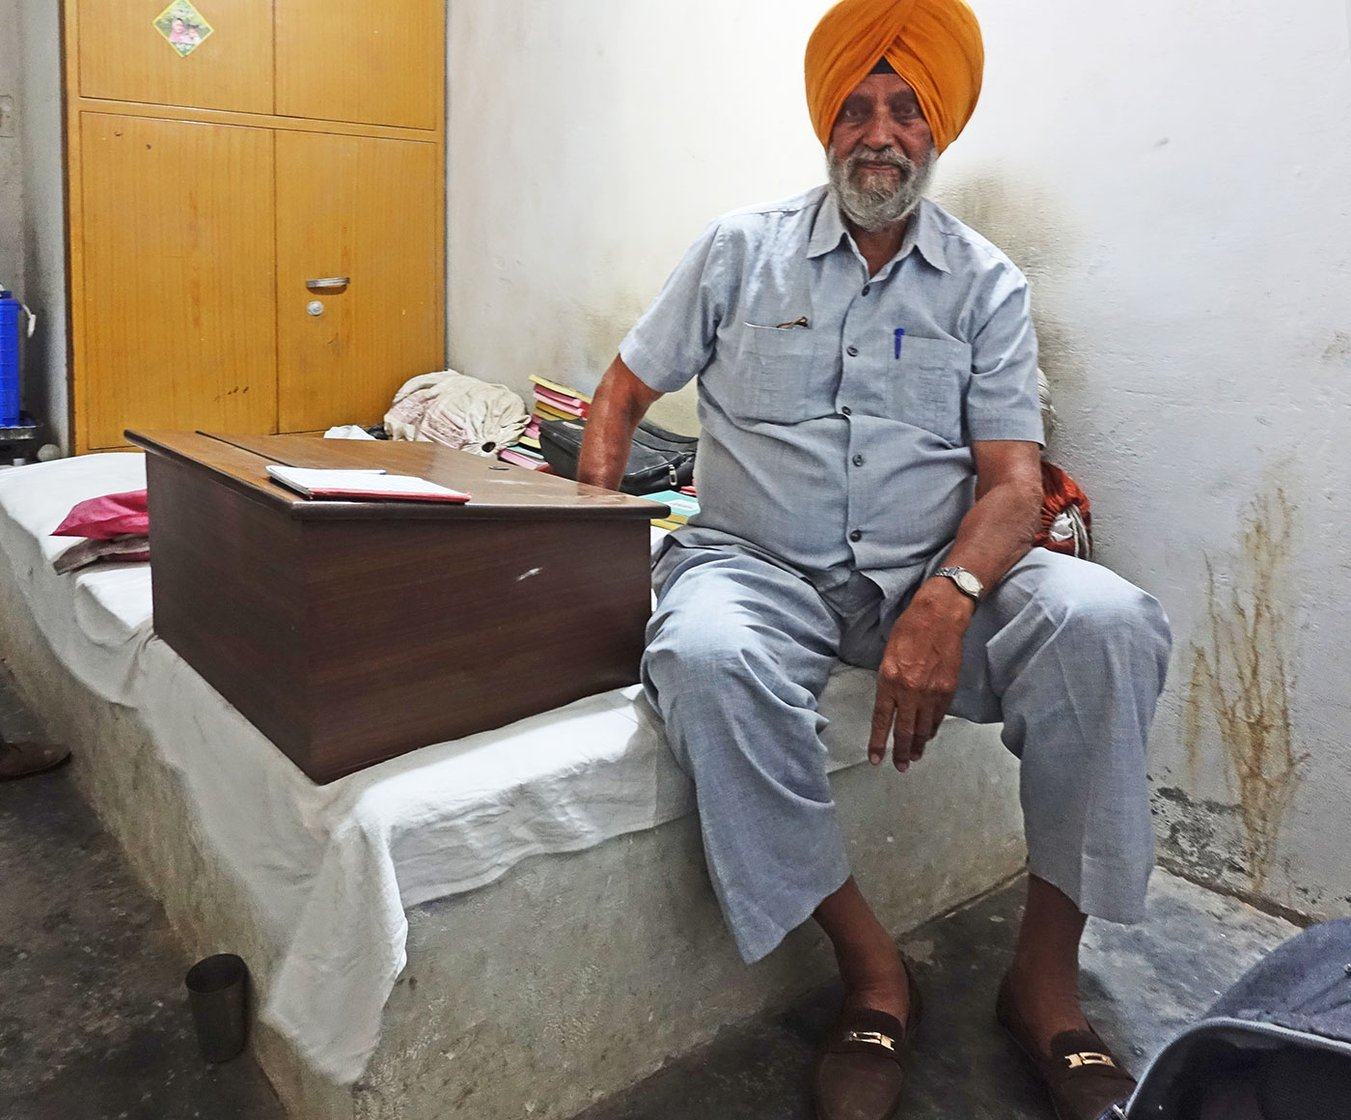 A man sitting on a bed in an orange turban